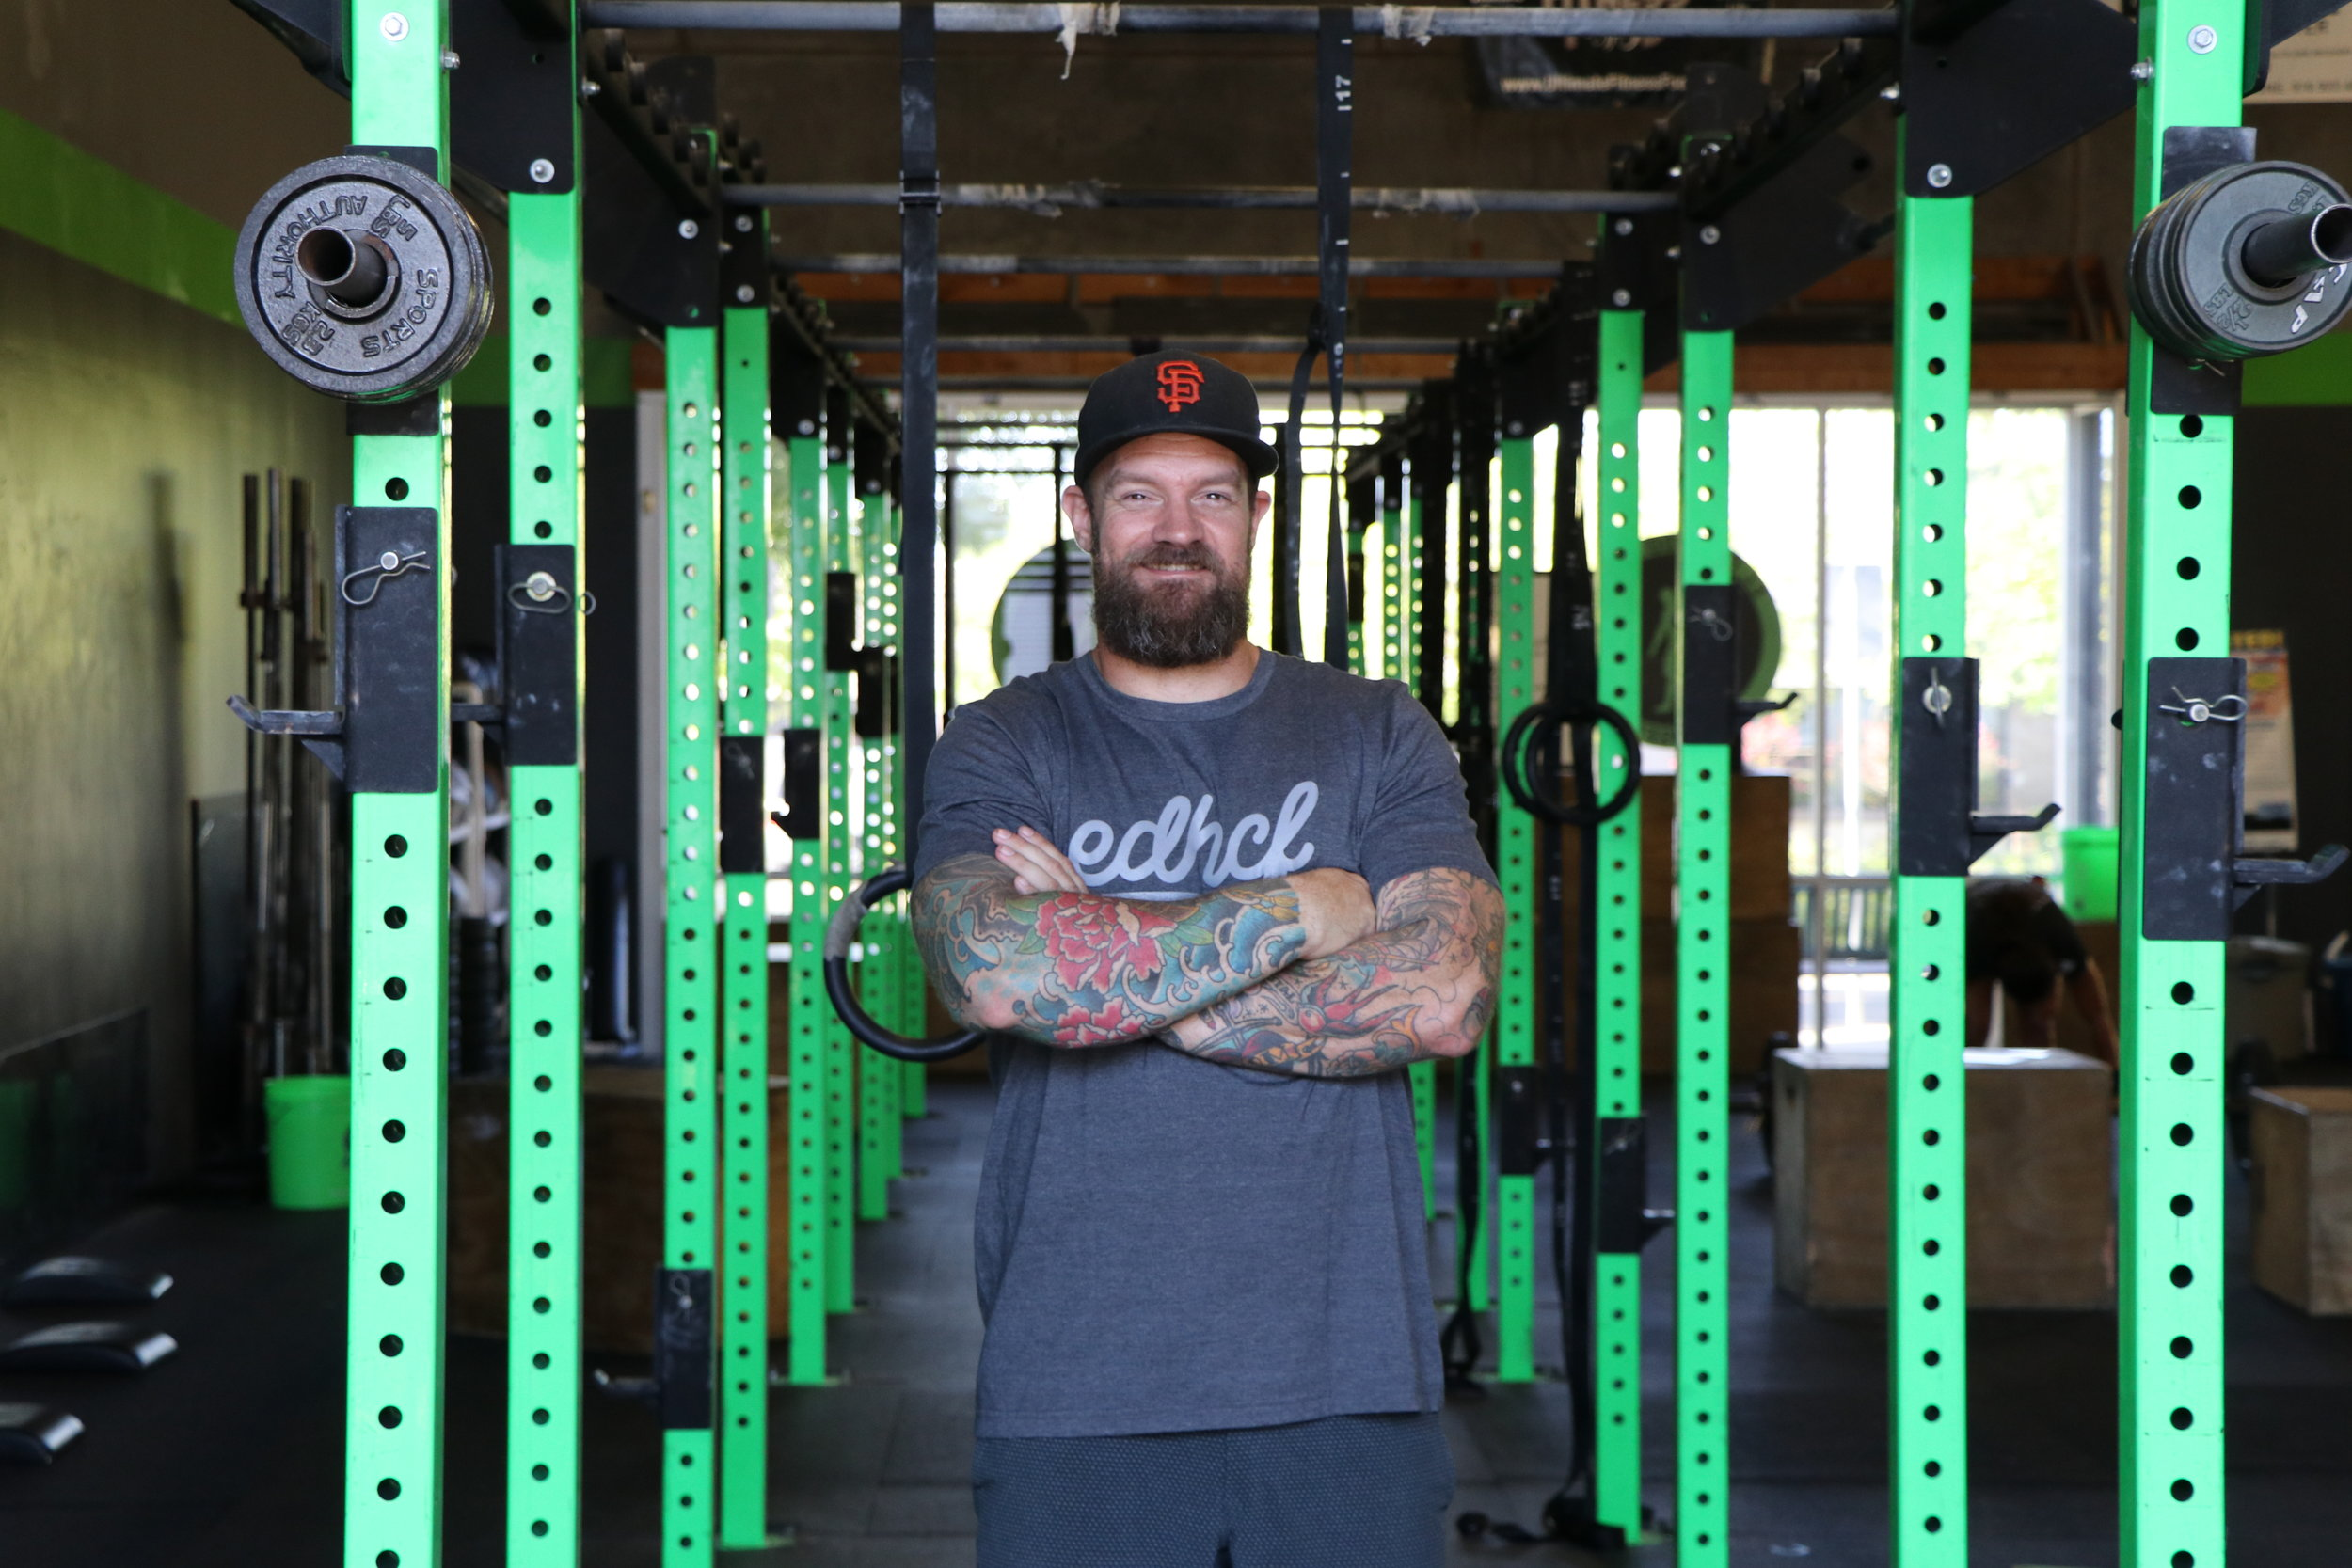 "JEFF PRESCOTT JR Owner & Head Coach    Jeff is the Owner and Head Coach at El Dorado Hills CrossFit. A former golfer and mixed martial artist, Jeff started CrossFit as a way to get in shape. Once he stopped fighting, he gained a significant amount of weight and didn't feel mentally or physically fit. ""I saw that there was a small CrossFit gym down the street from me and decided to try it out. After one workout, I was instantly hooked and never looked back! CrossFit allowed me to drop the weight and stay competitive.""  Jeff became so passionate about training that he wanted to help others achieve their goals as well. He became a certified Level 1 and Olympic Weightlifting Coach and has used his skills to make a positive difference in athletes' lives. He wants your workout to be the best part of your day. When you train at El Dorado Hills CrossFit, you don't just reach your goals, you surpass them!"